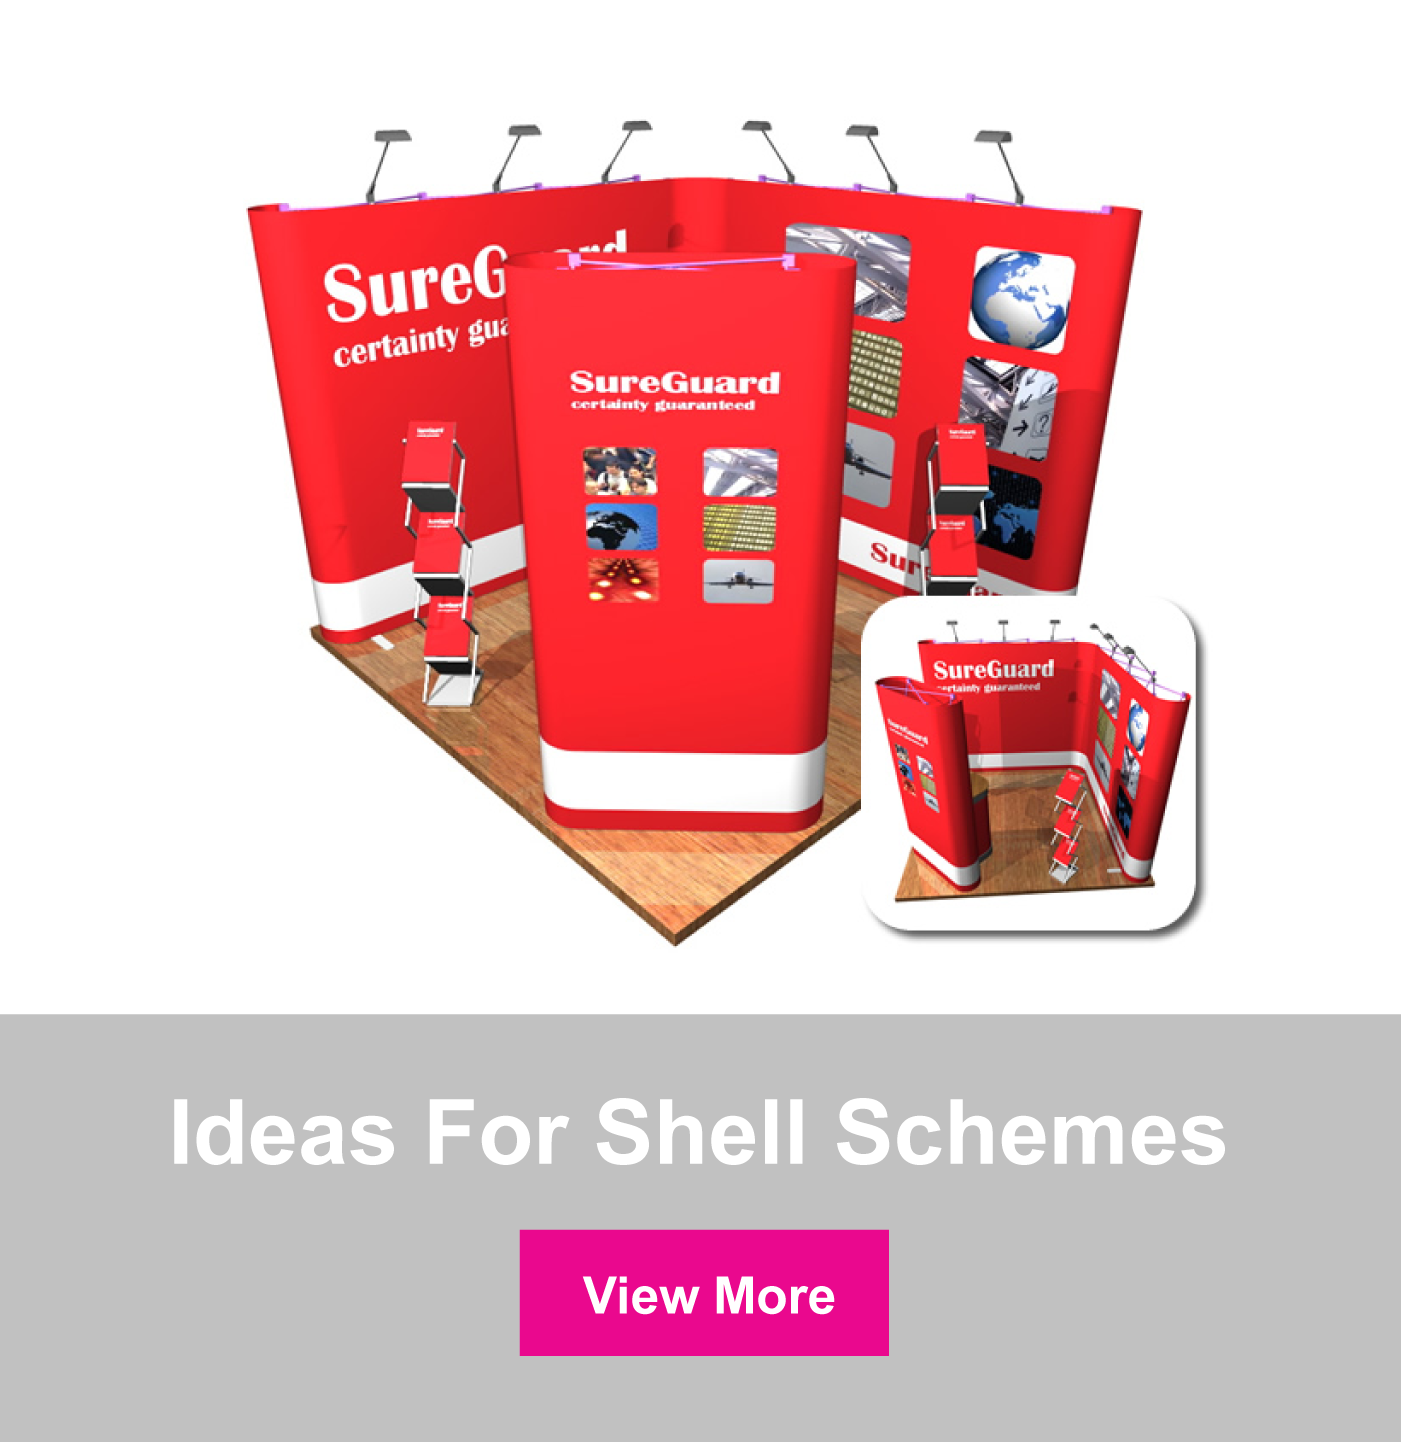 Ideas for shell scheme stands